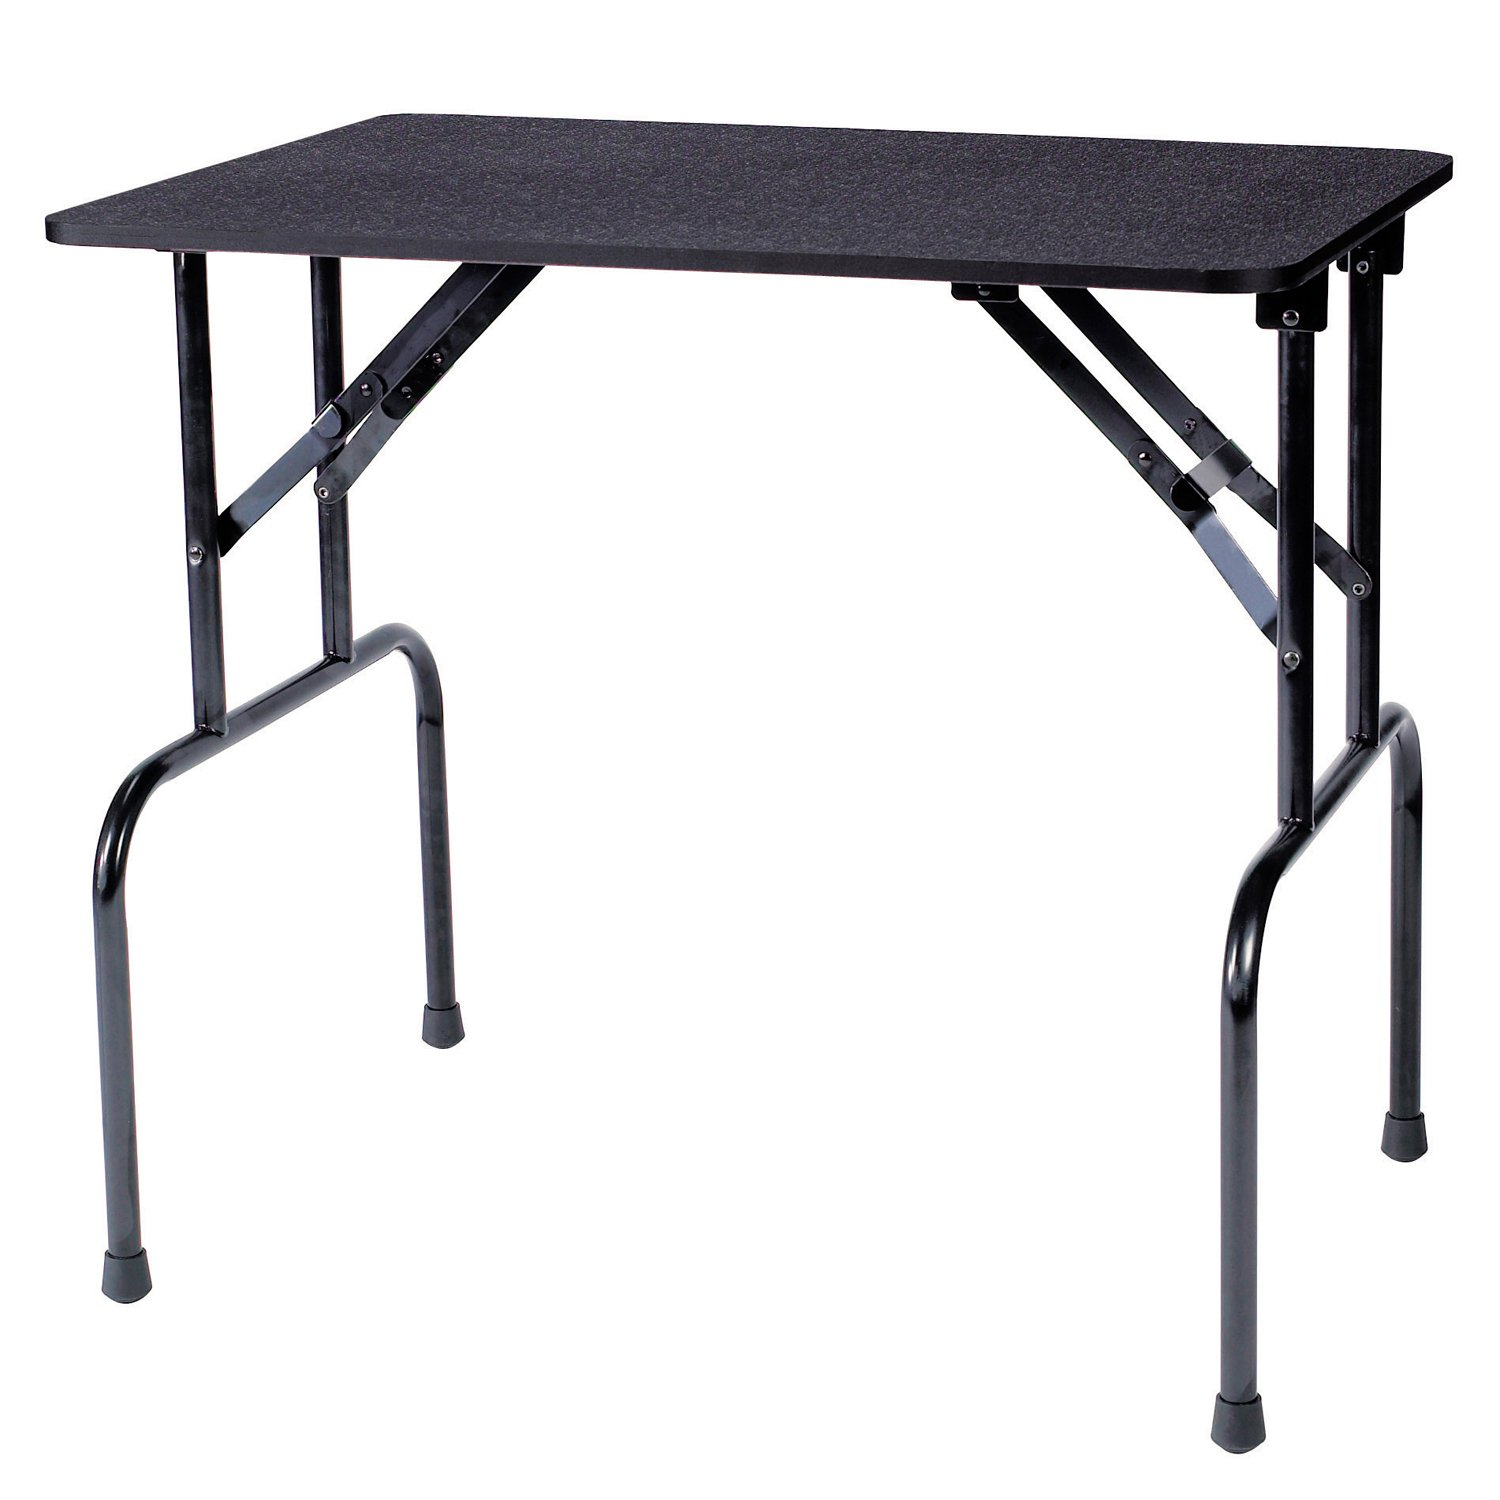 Master Equipment Steel Non-Slip Matting Grooming Able Pet Table, 36-Inch by Master Equipment